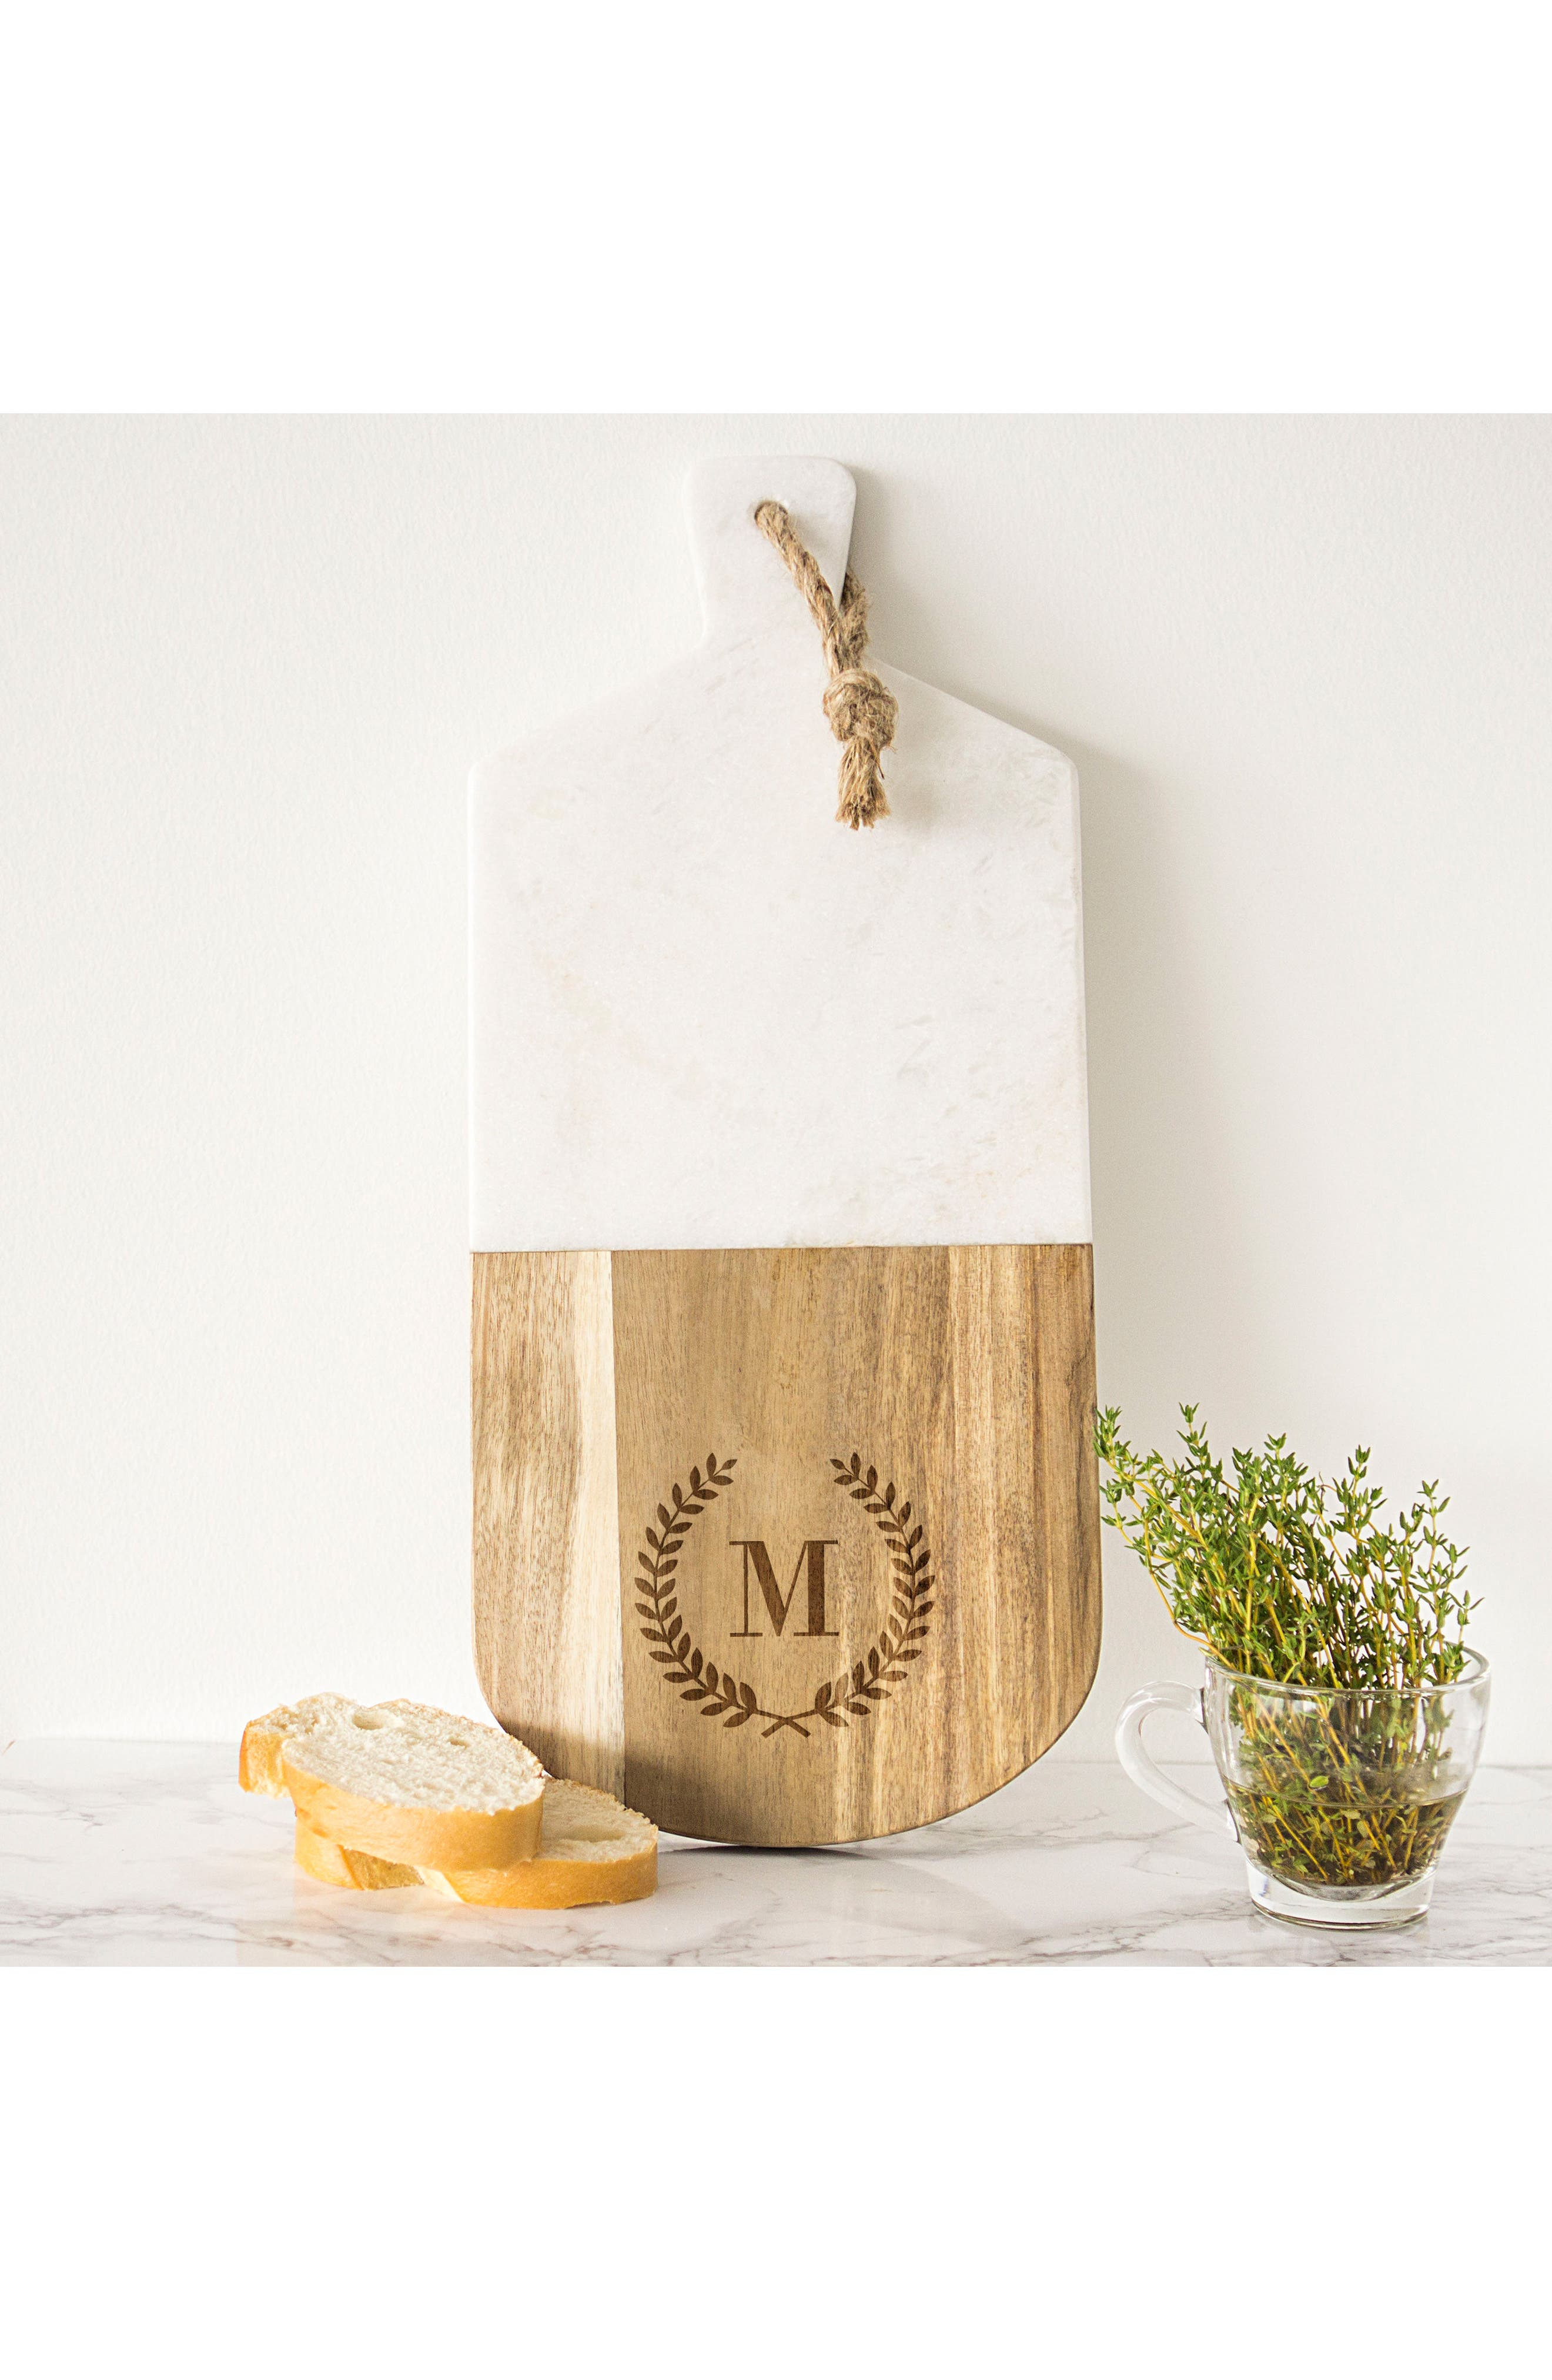 Monogram Marble & Wood Serving Board,                             Alternate thumbnail 5, color,